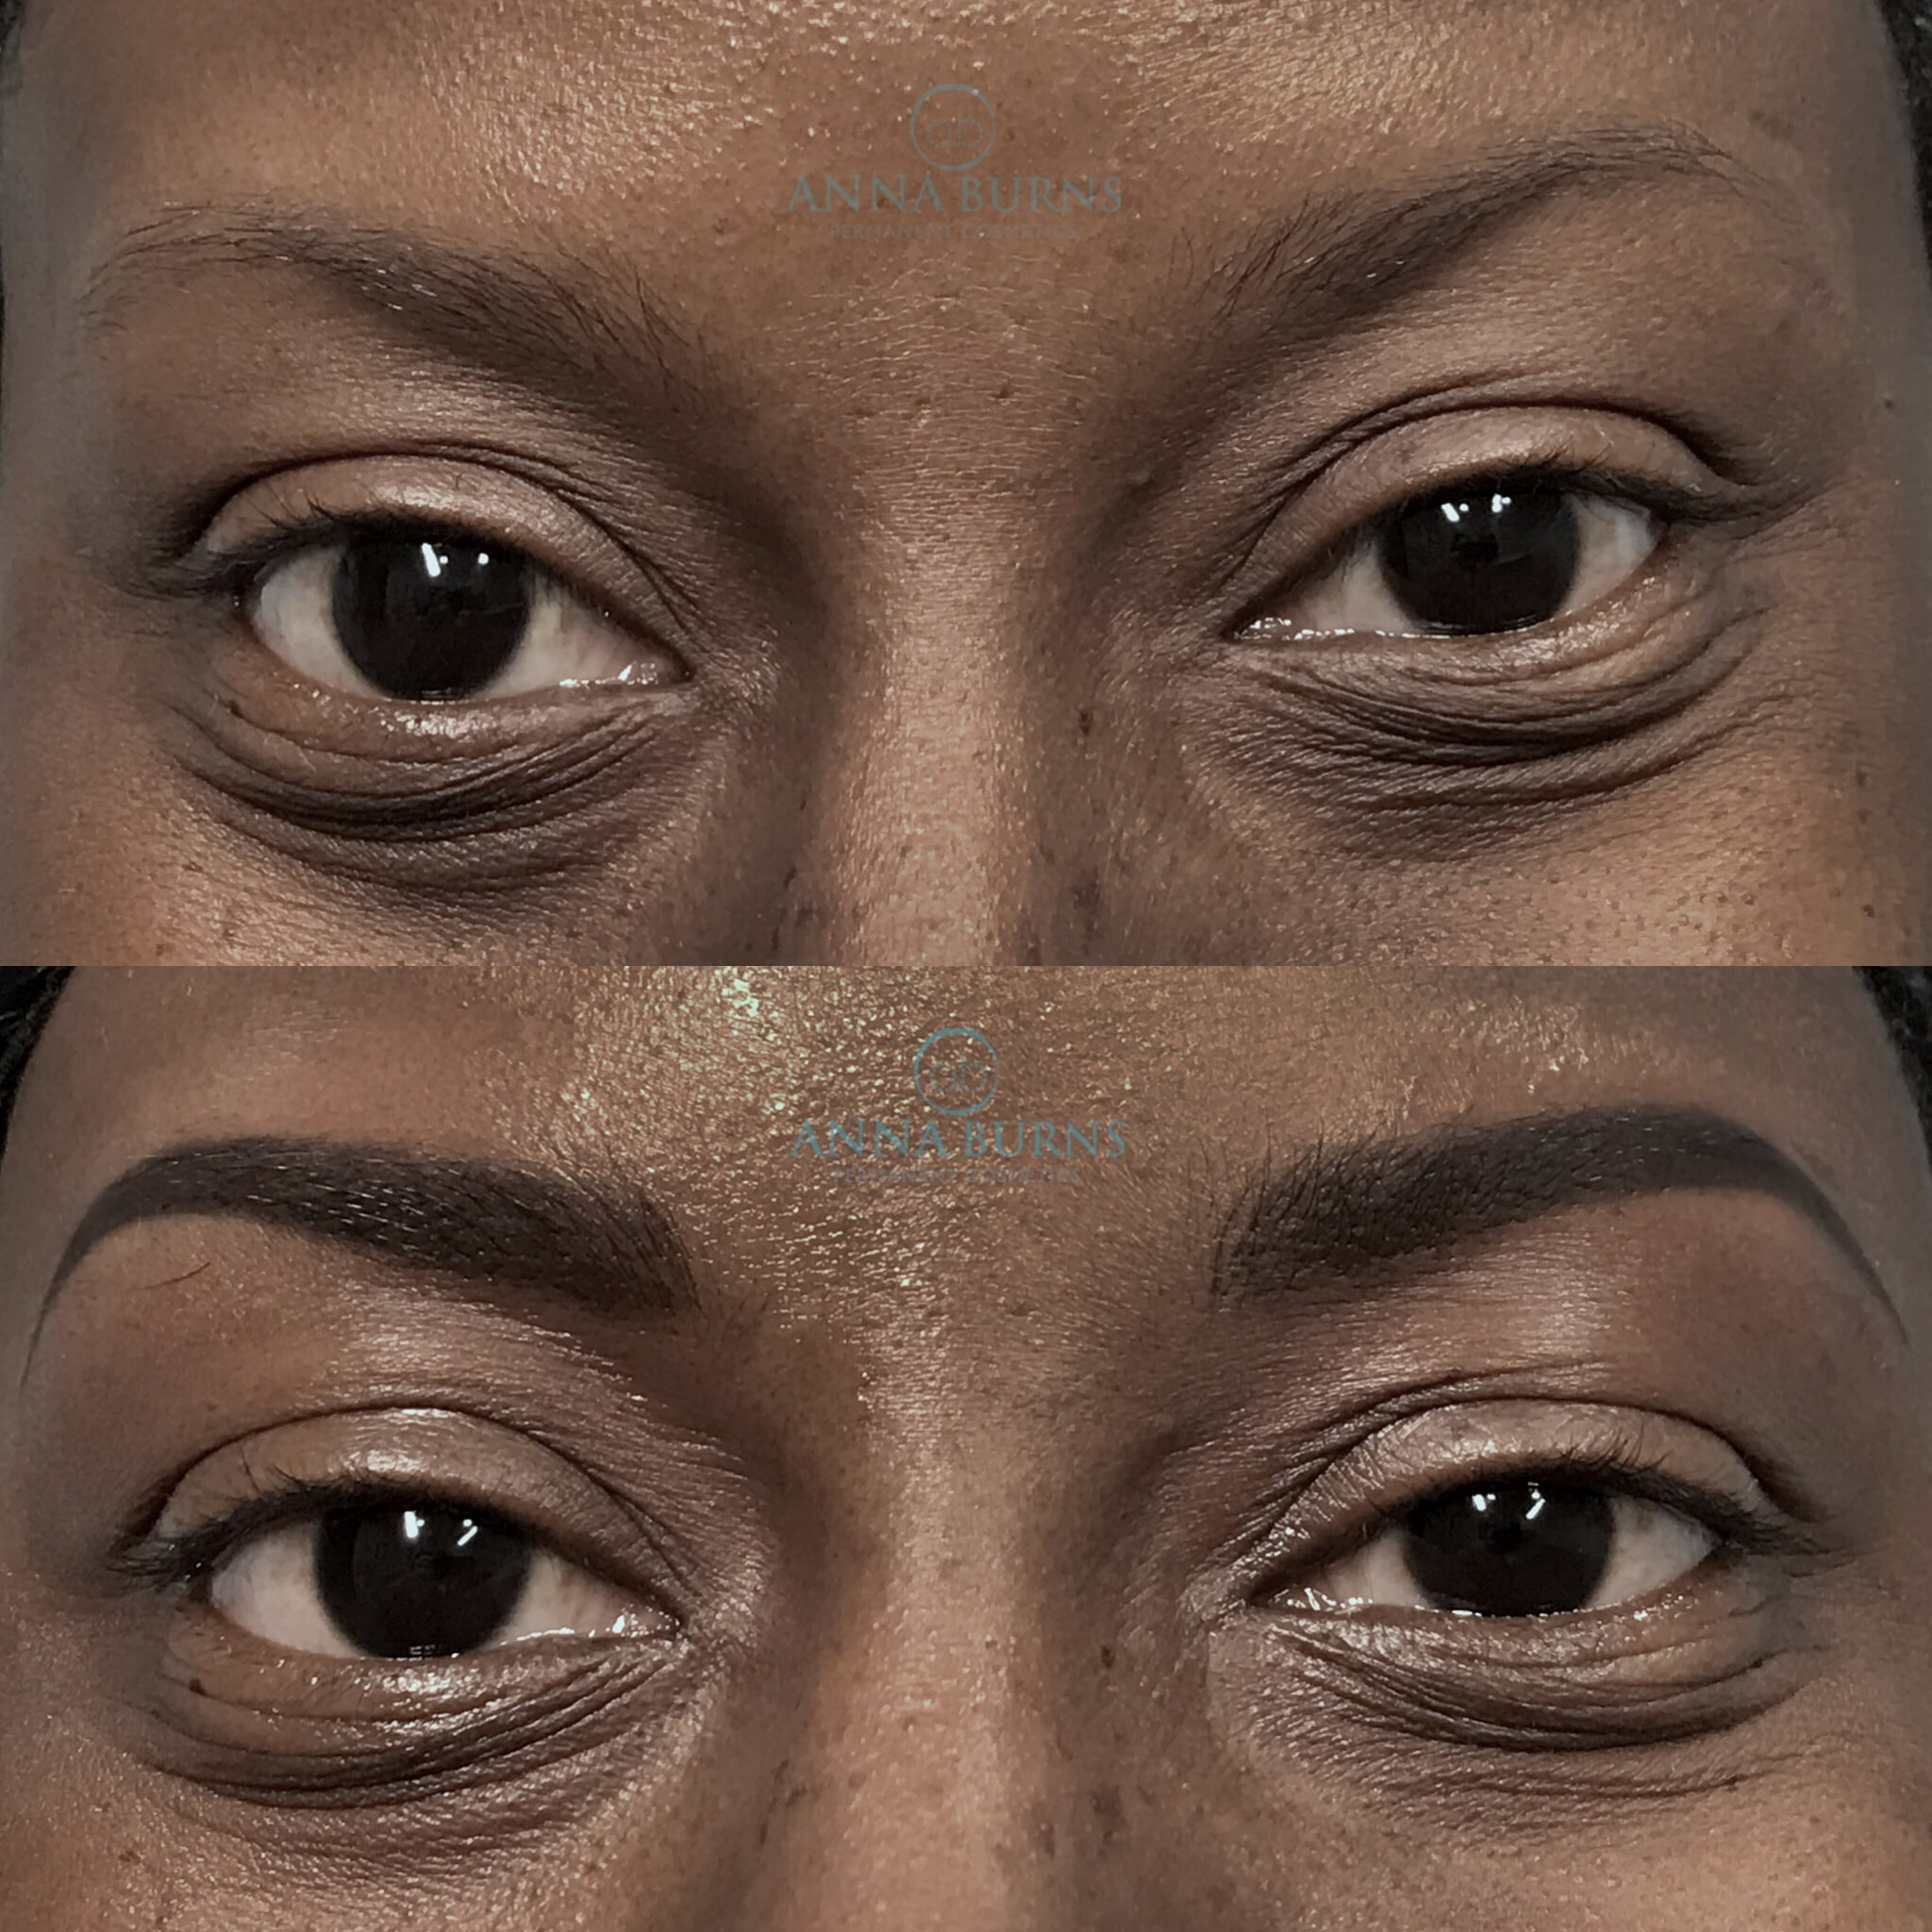 What Is The Difference Between Microblading And Eyebrows Tattooing?